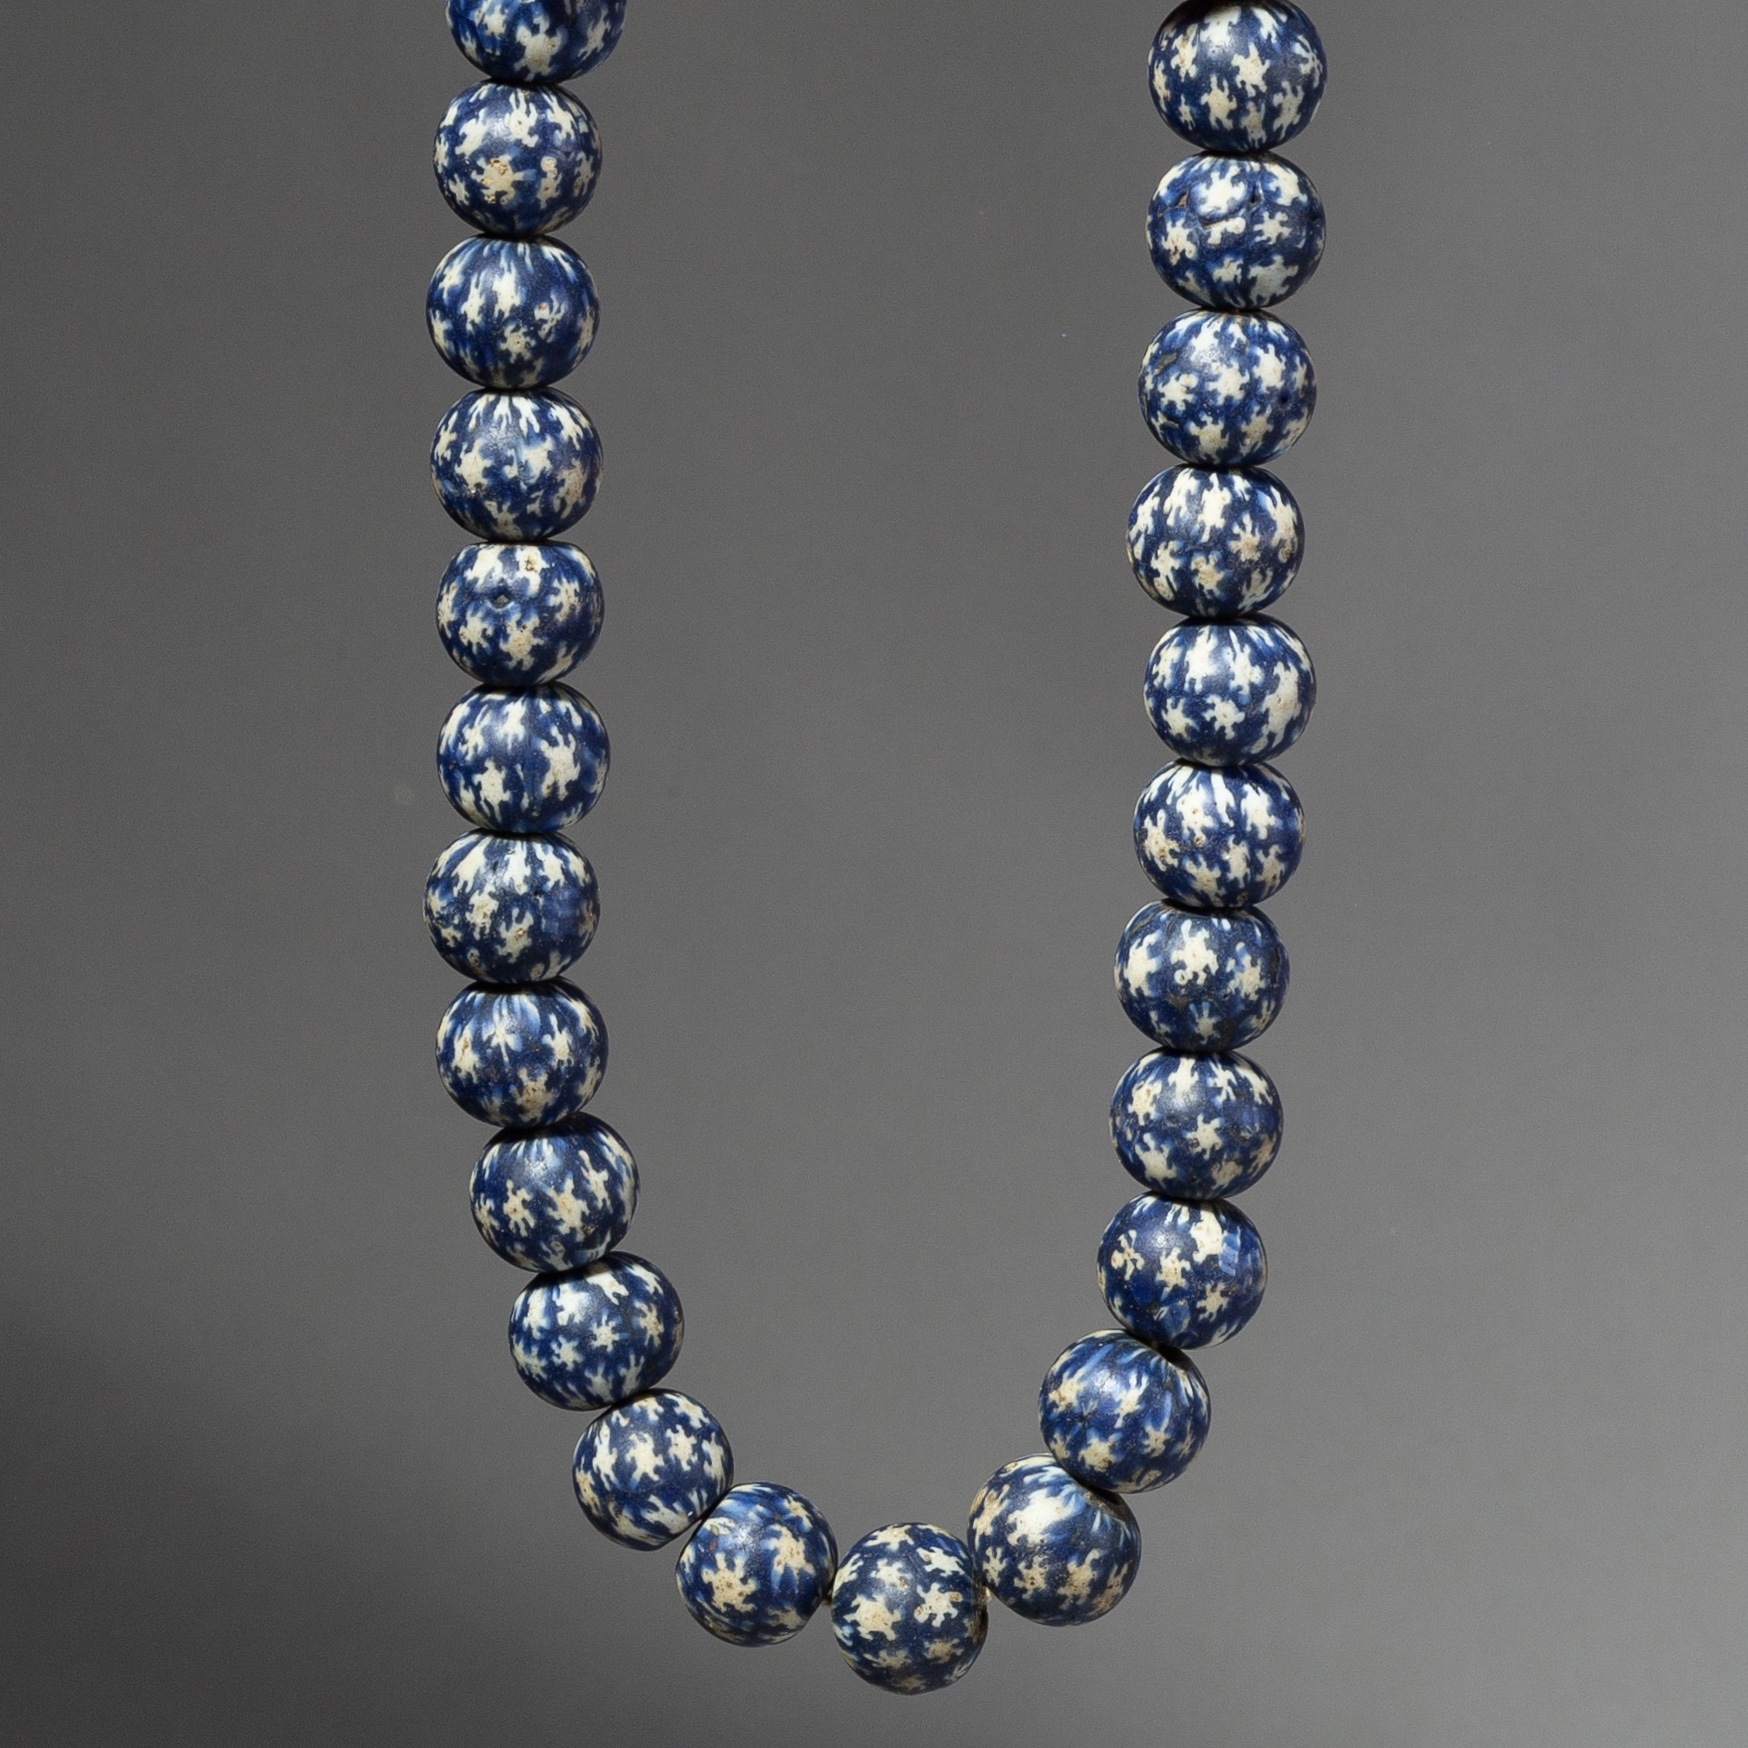 A LARGE STAR DESIGN GLASS BEAD NECKLACE FROM JAVA ( No 2146 )